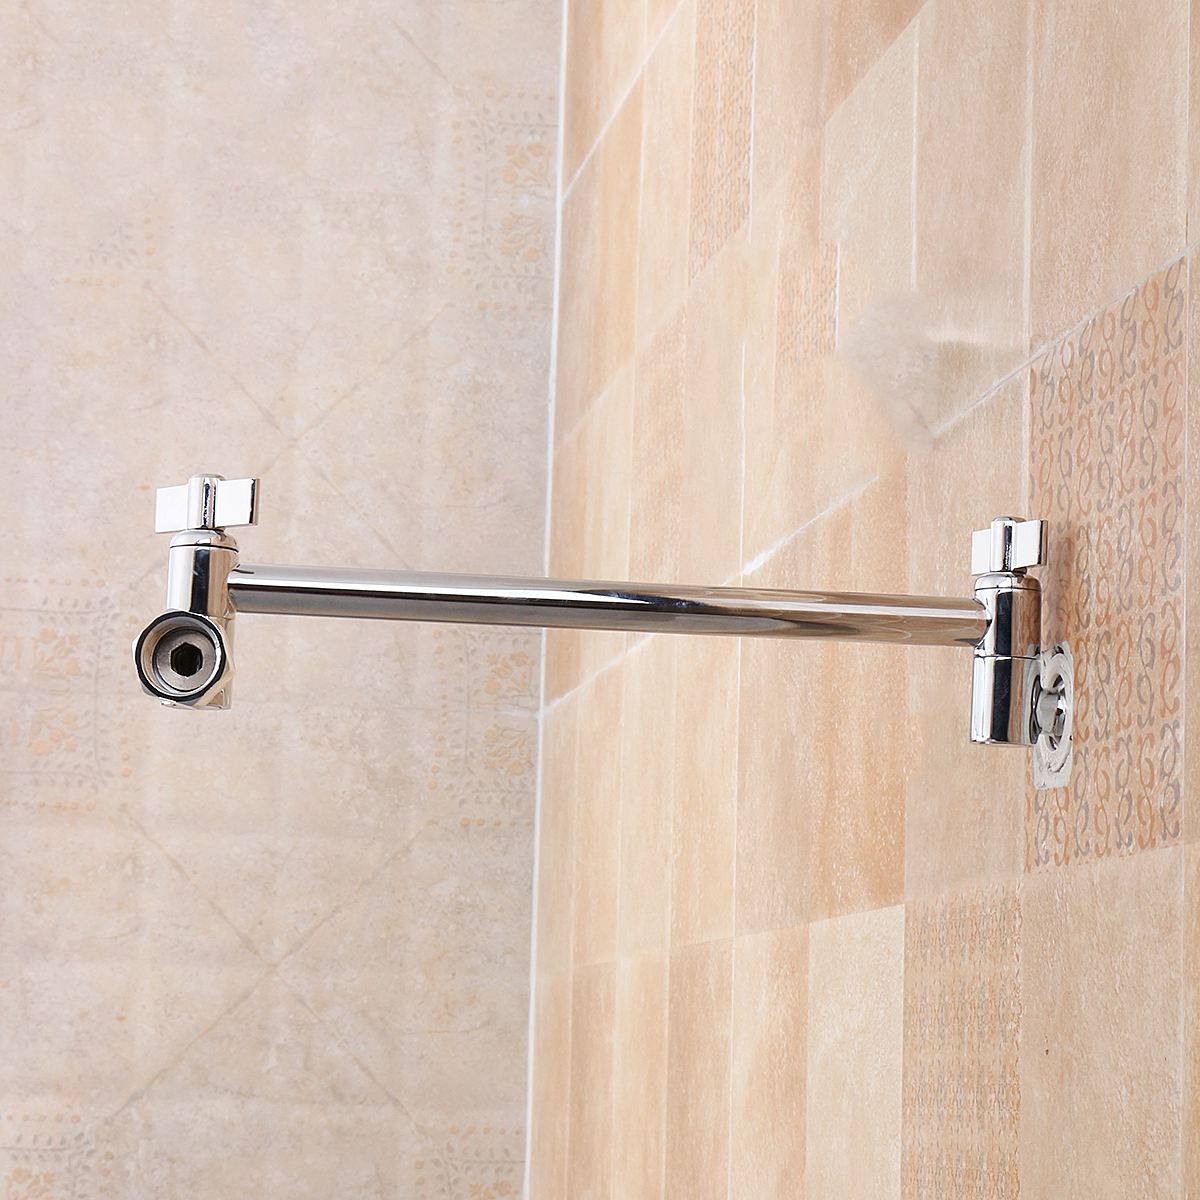 Bathroom Fixtures Brass popular brass bathroom fixtures-buy cheap brass bathroom fixtures